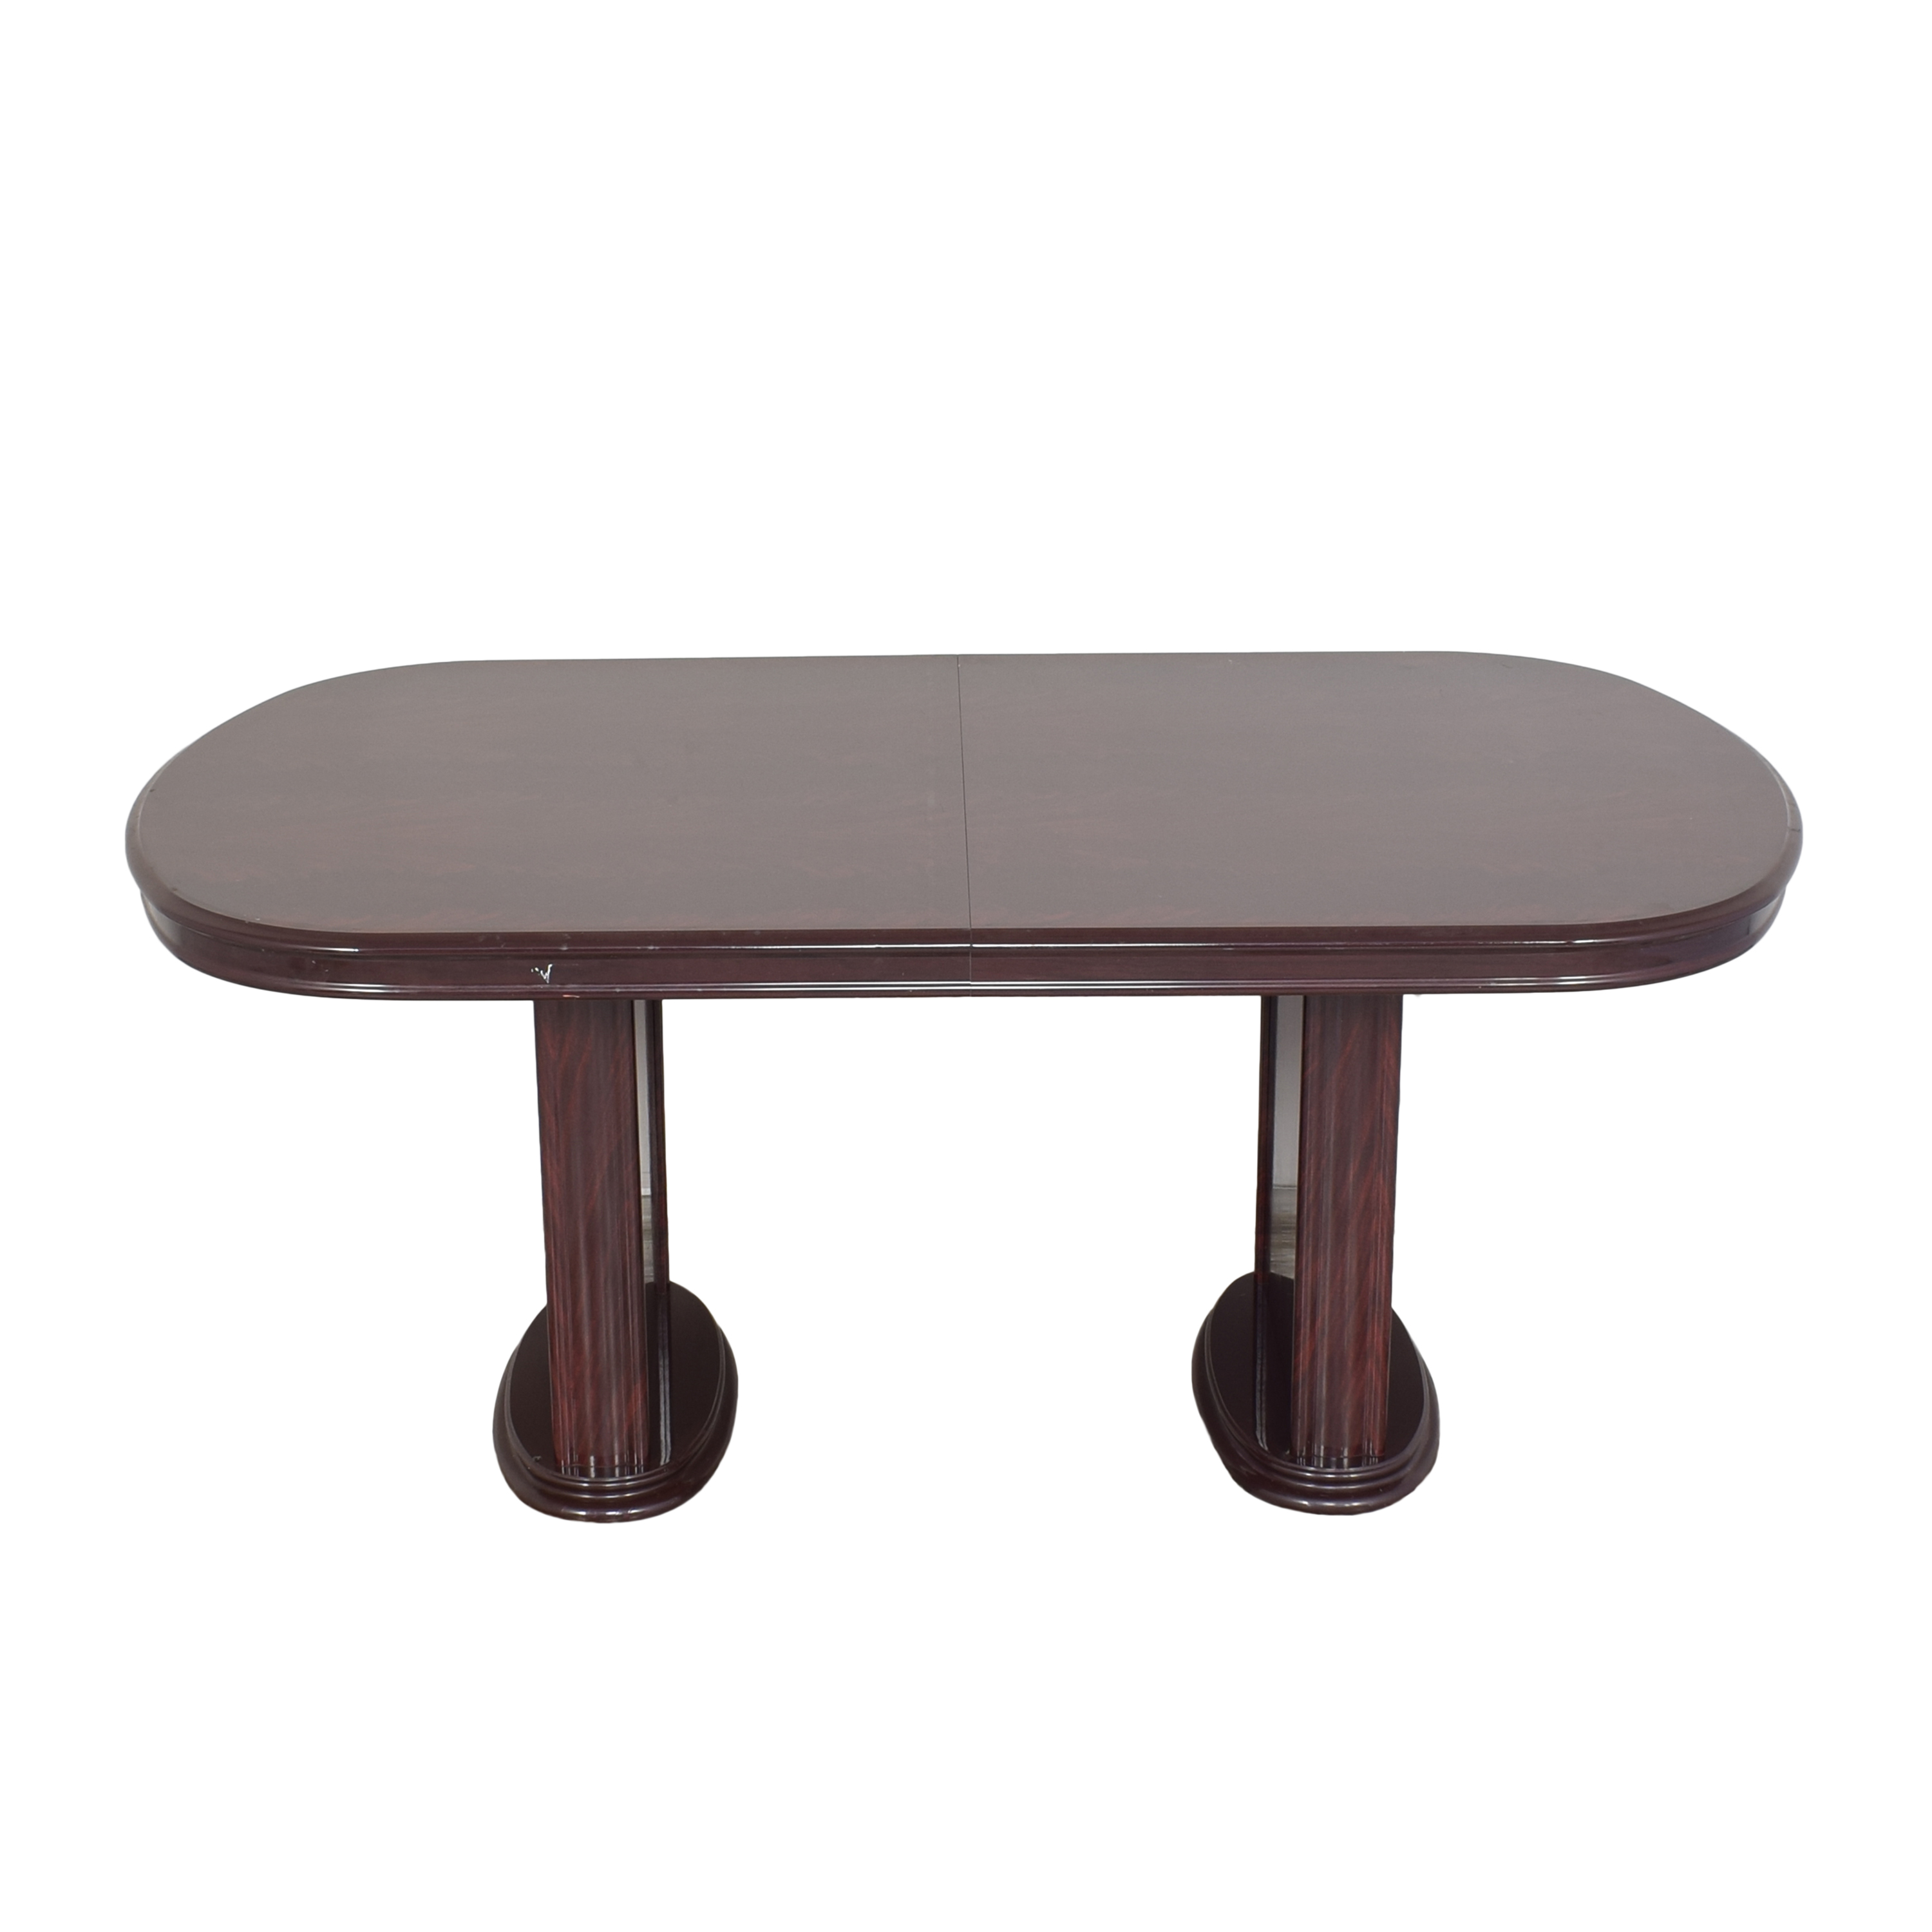 buy Raymour & Flanigan Two Pedestal Dining Table Raymour & Flanigan Dinner Tables